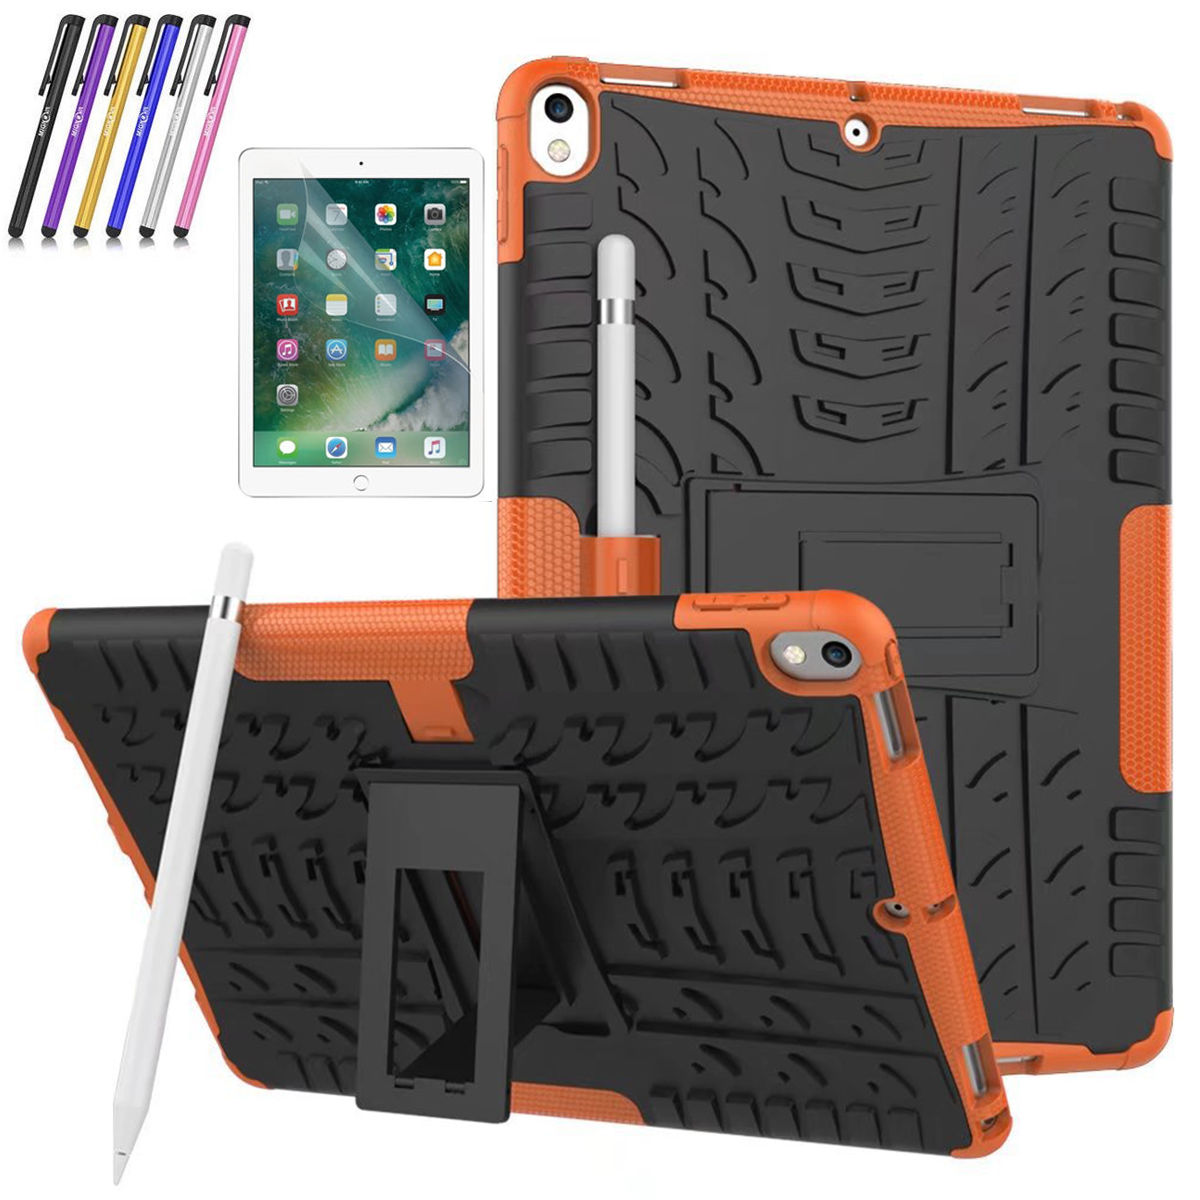 iPad Pro 10.5 inch Case, Mignova Hybrid Protection Cover Built-In Kickstand Skin Case For Apple iPad Pro 10.5 inch 2017 Release A1701 / A1709 + Screen Protector Film and Stylus Pen (Black)